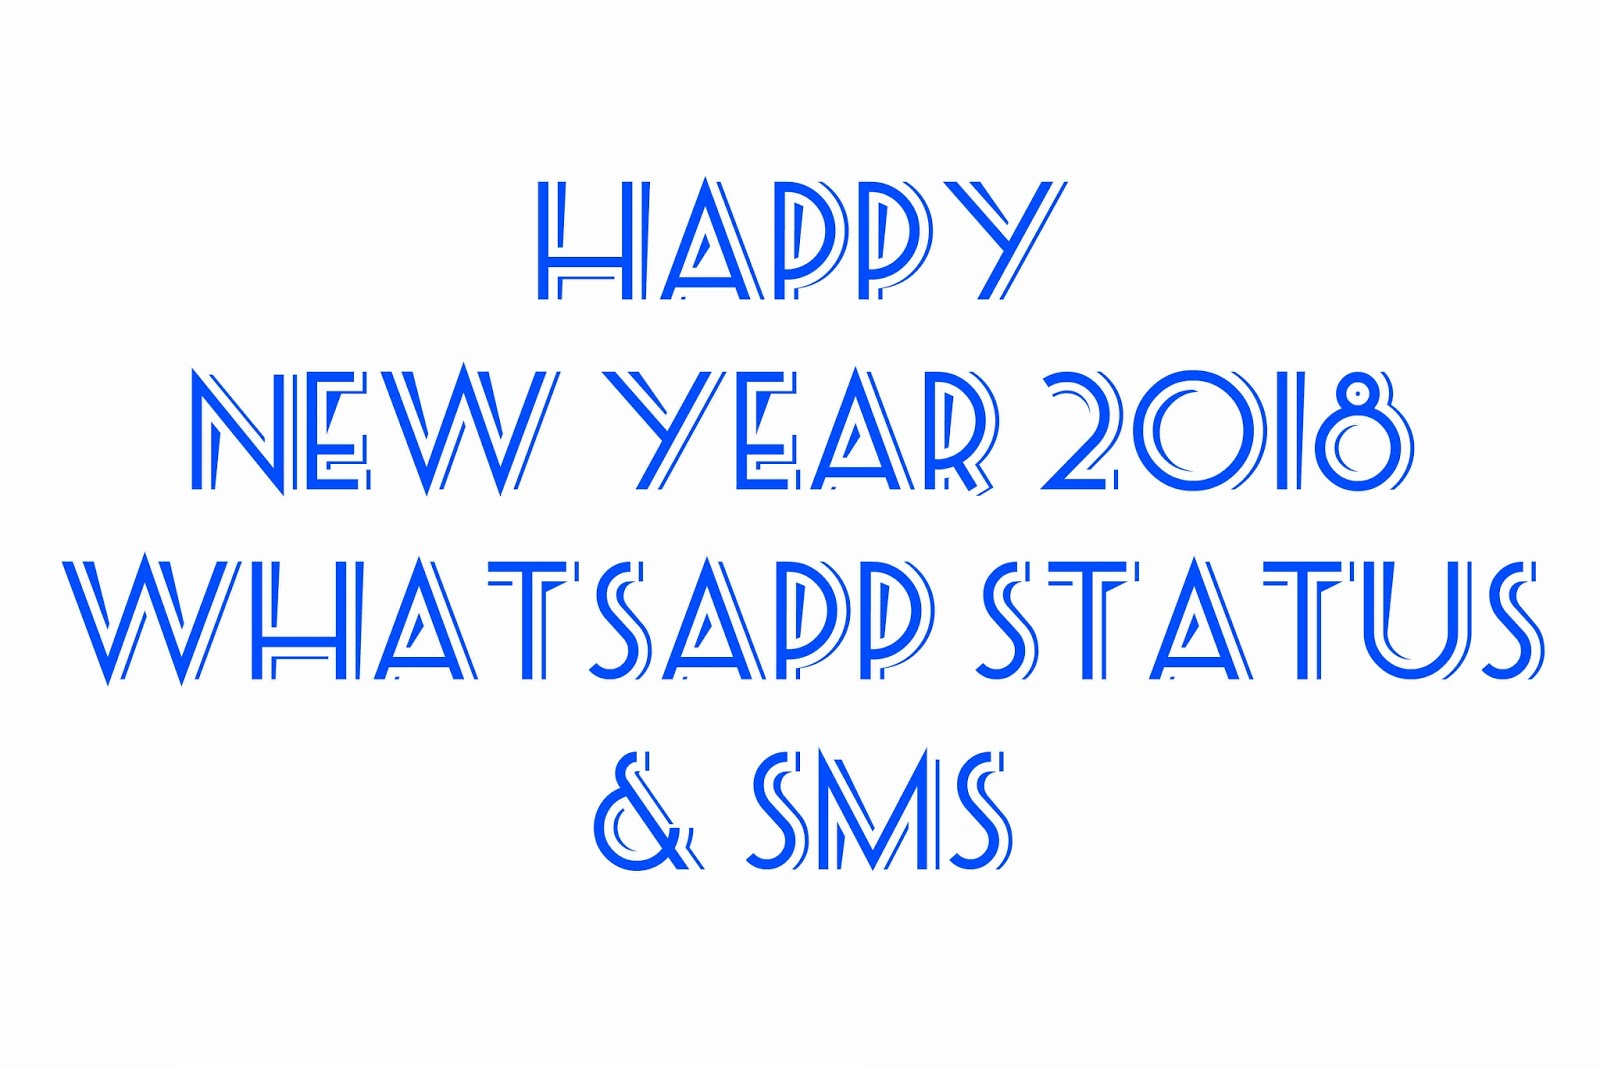 Happy new year 2018 whatsapp status sms happy new year 2k18 important citations short messages with the photos of blooms and natures abundance the latest and showy gifs or straightforward new year greetings kristyandbryce Choice Image